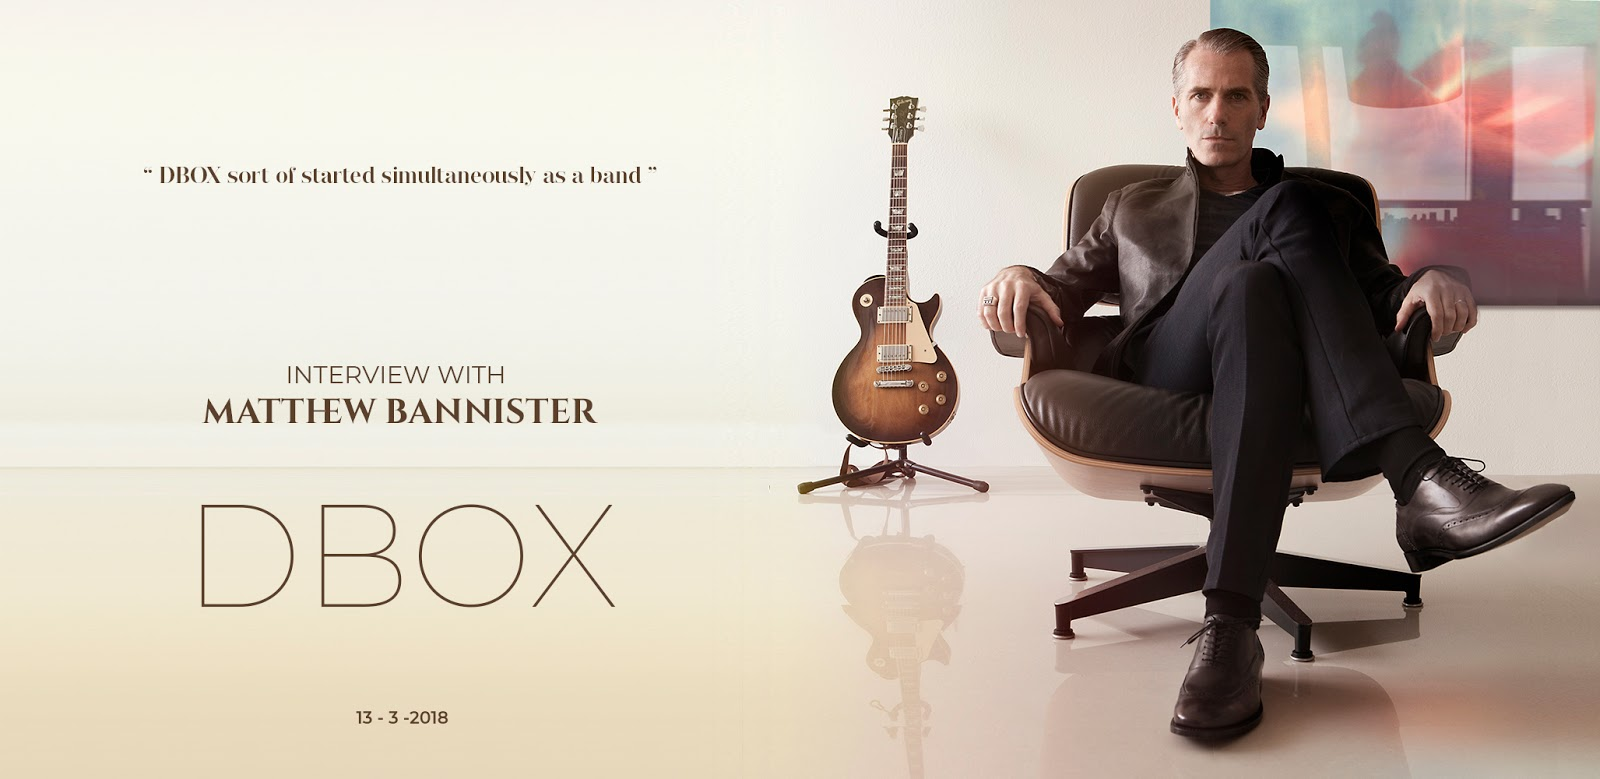 Interview With Dbox S Co Founder Matthew Bannister